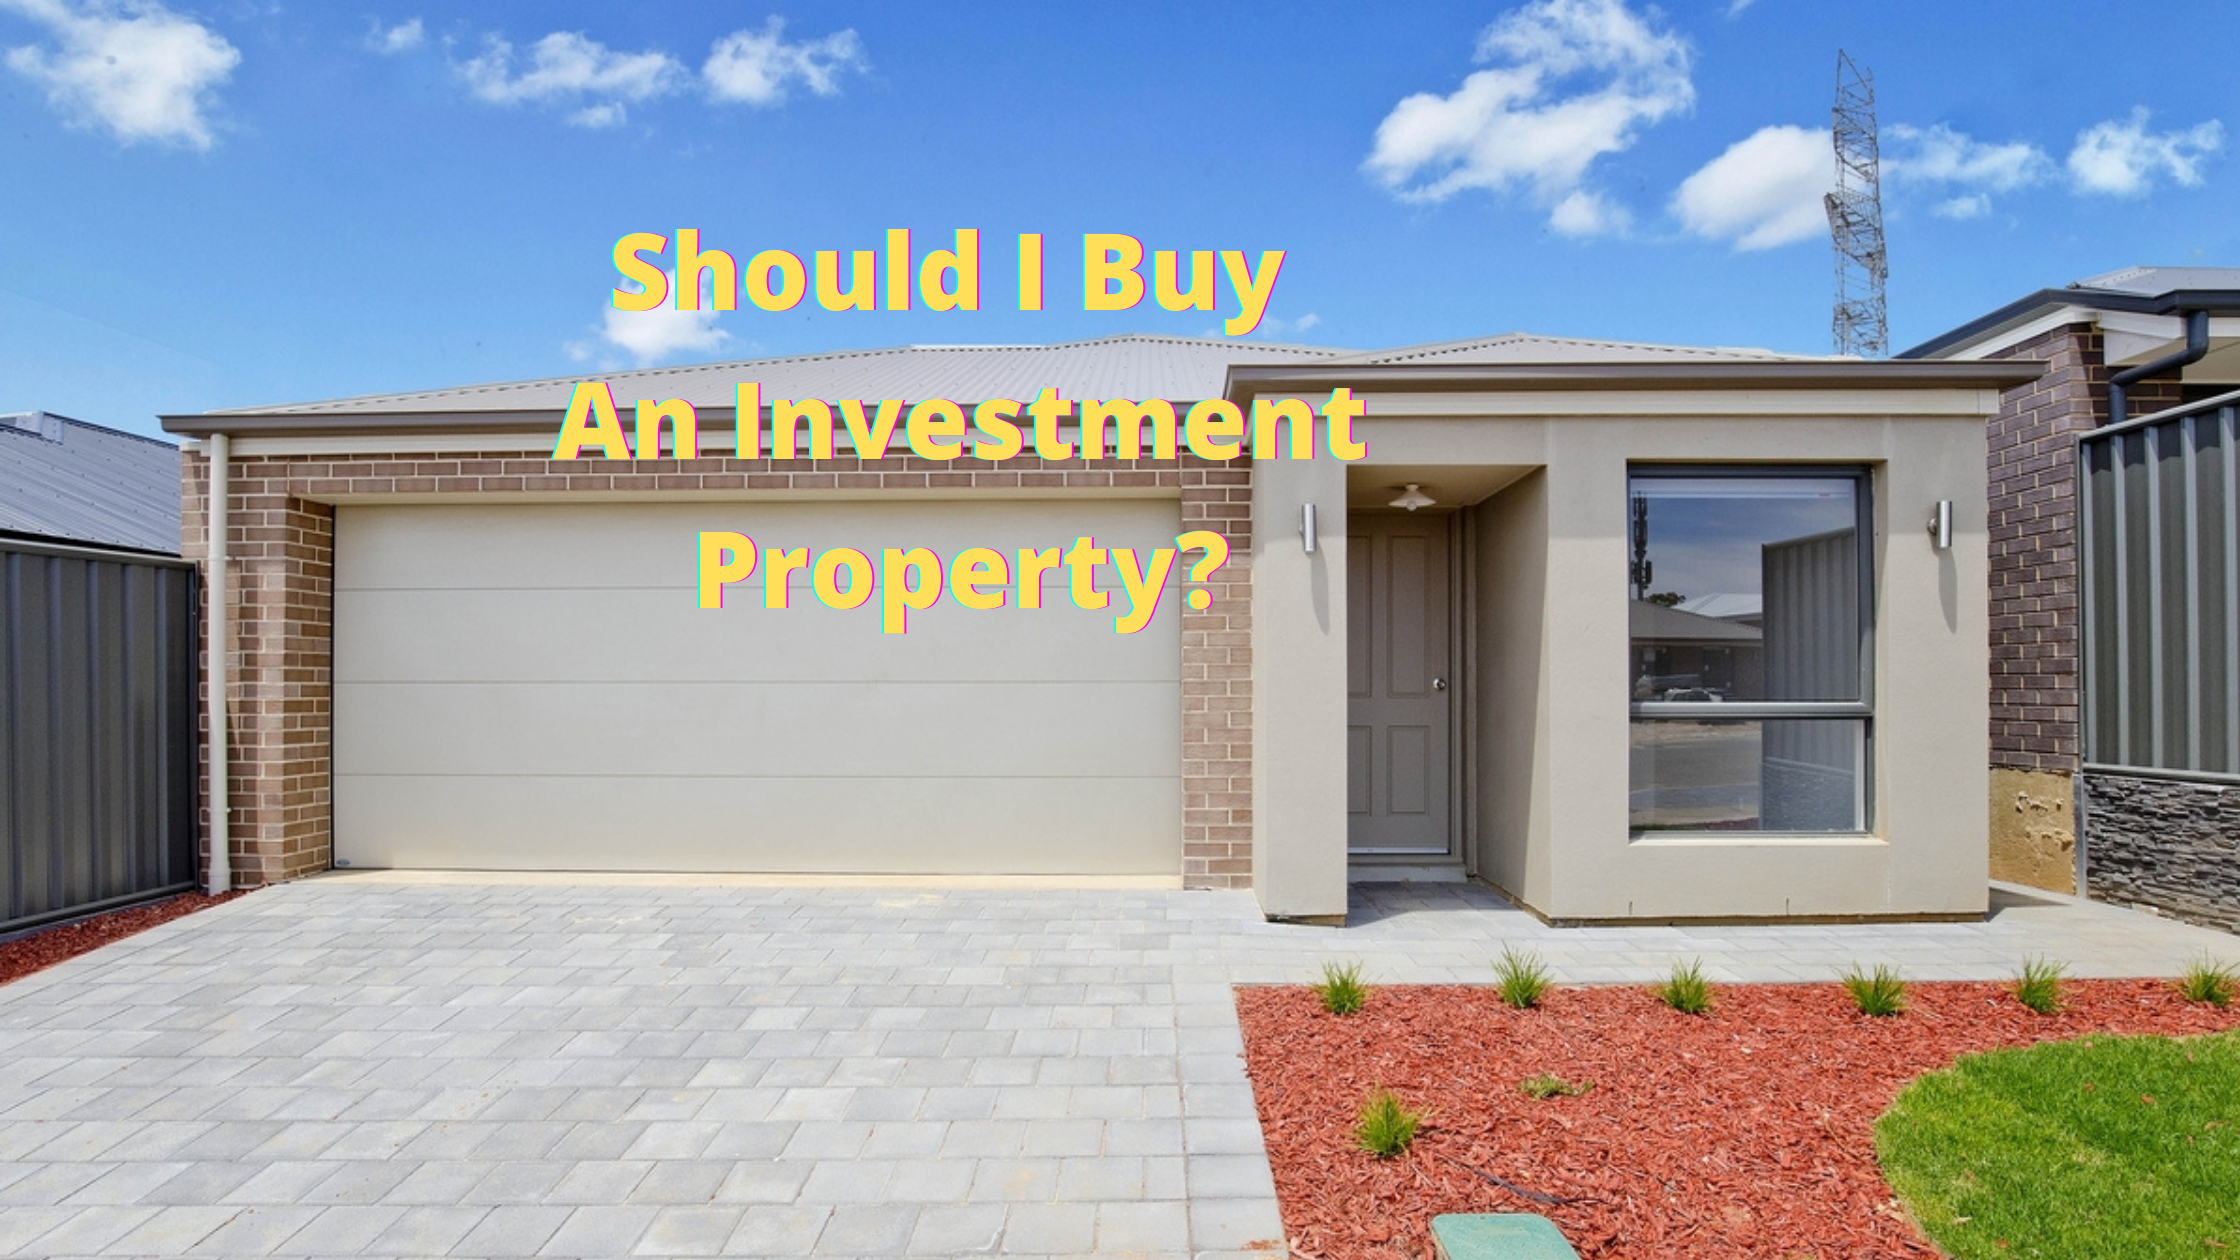 Should I Buy An Investment Property